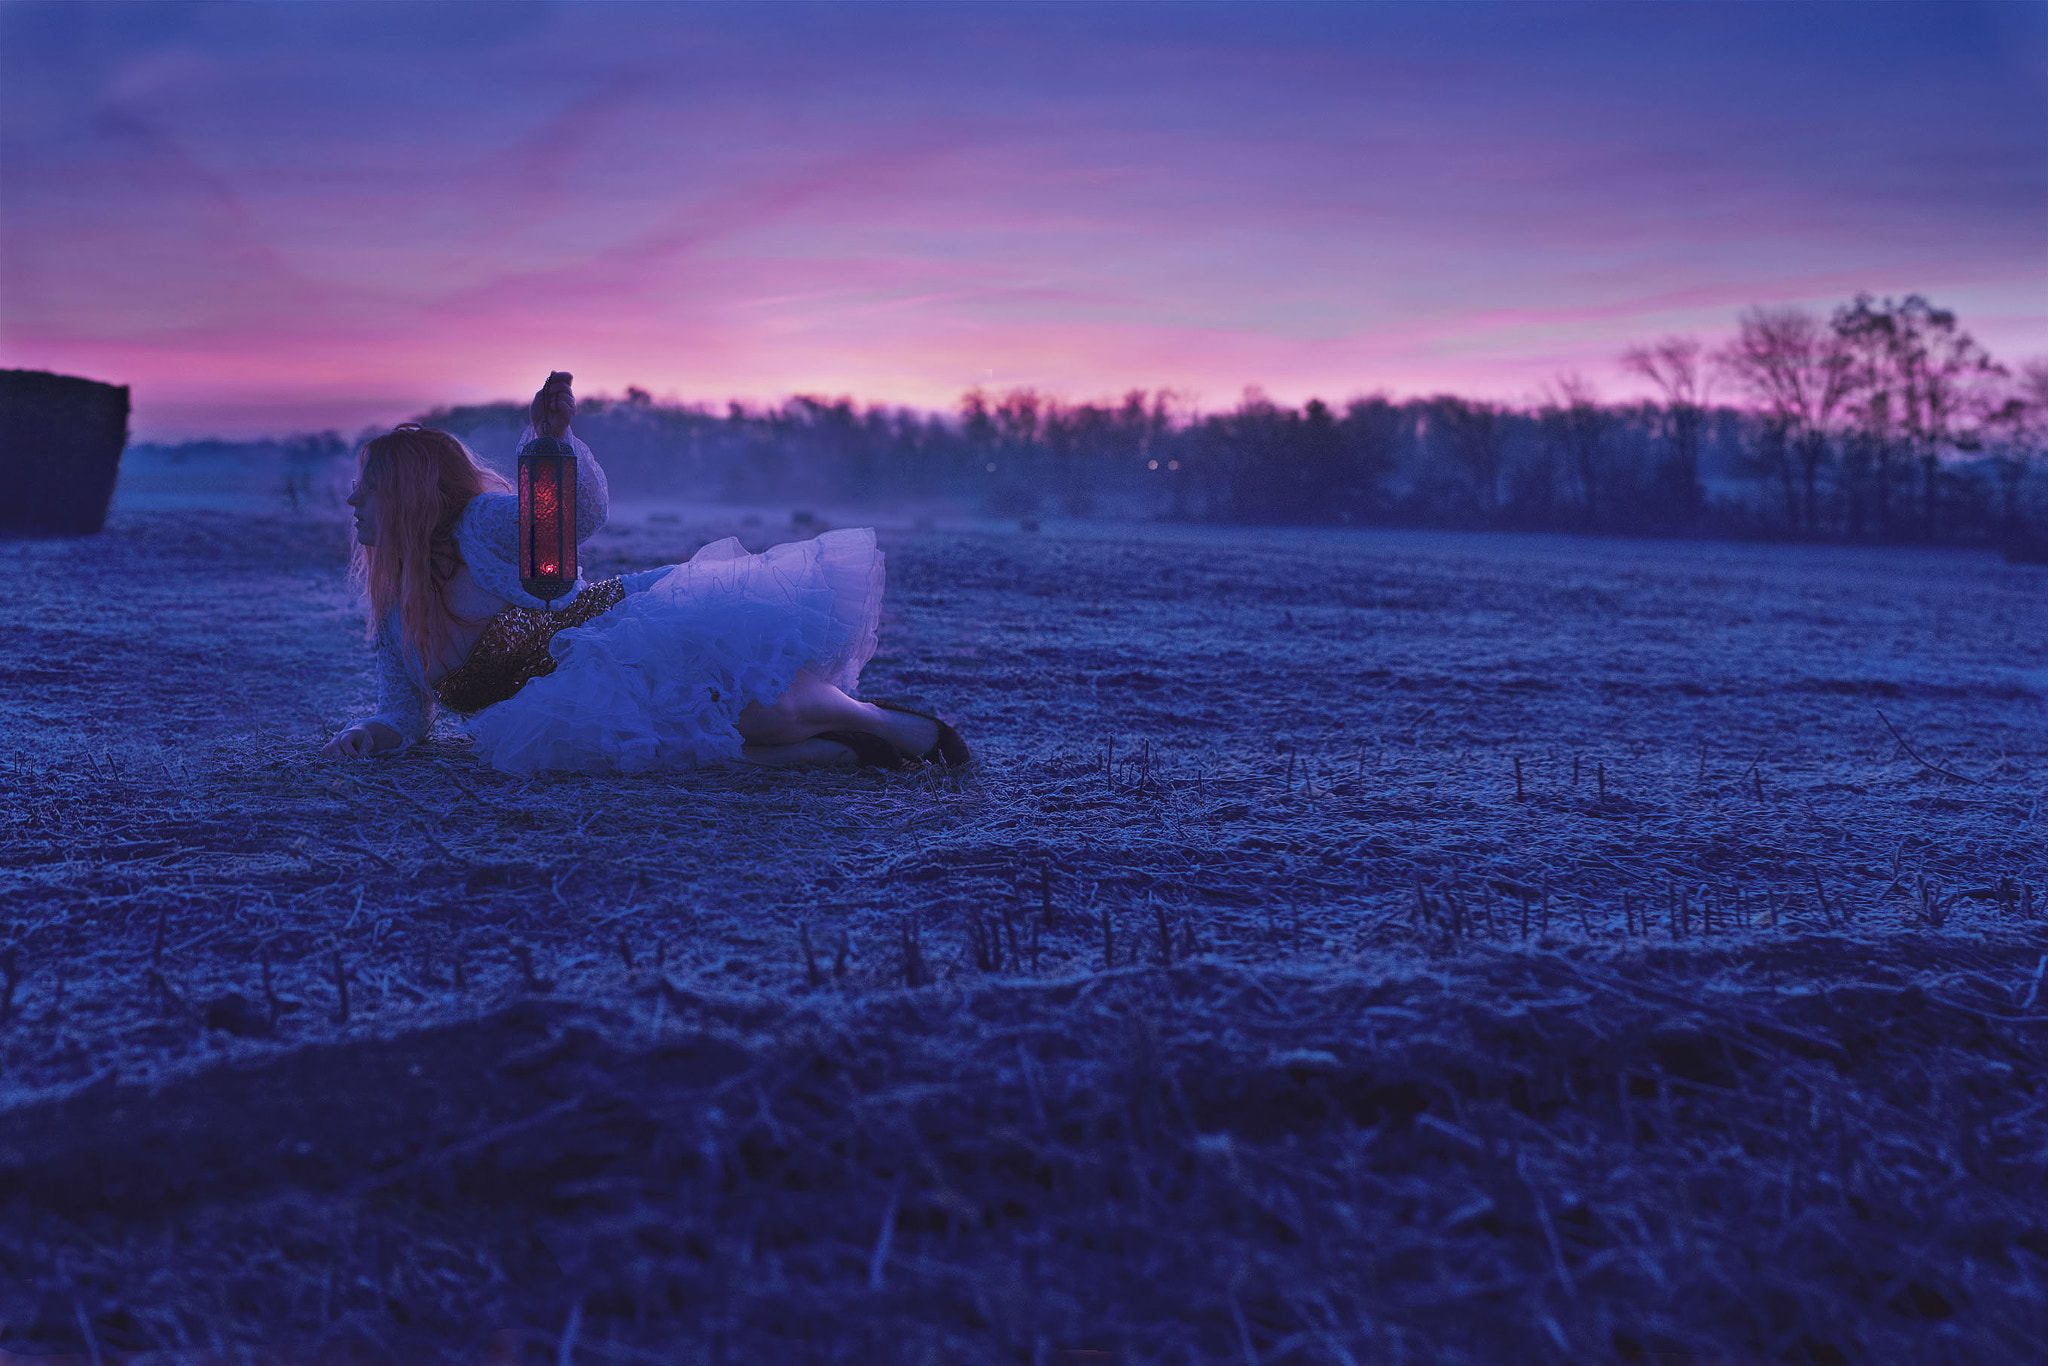 Photograph A Noise in the Distance by Sarah Hoey on 500px